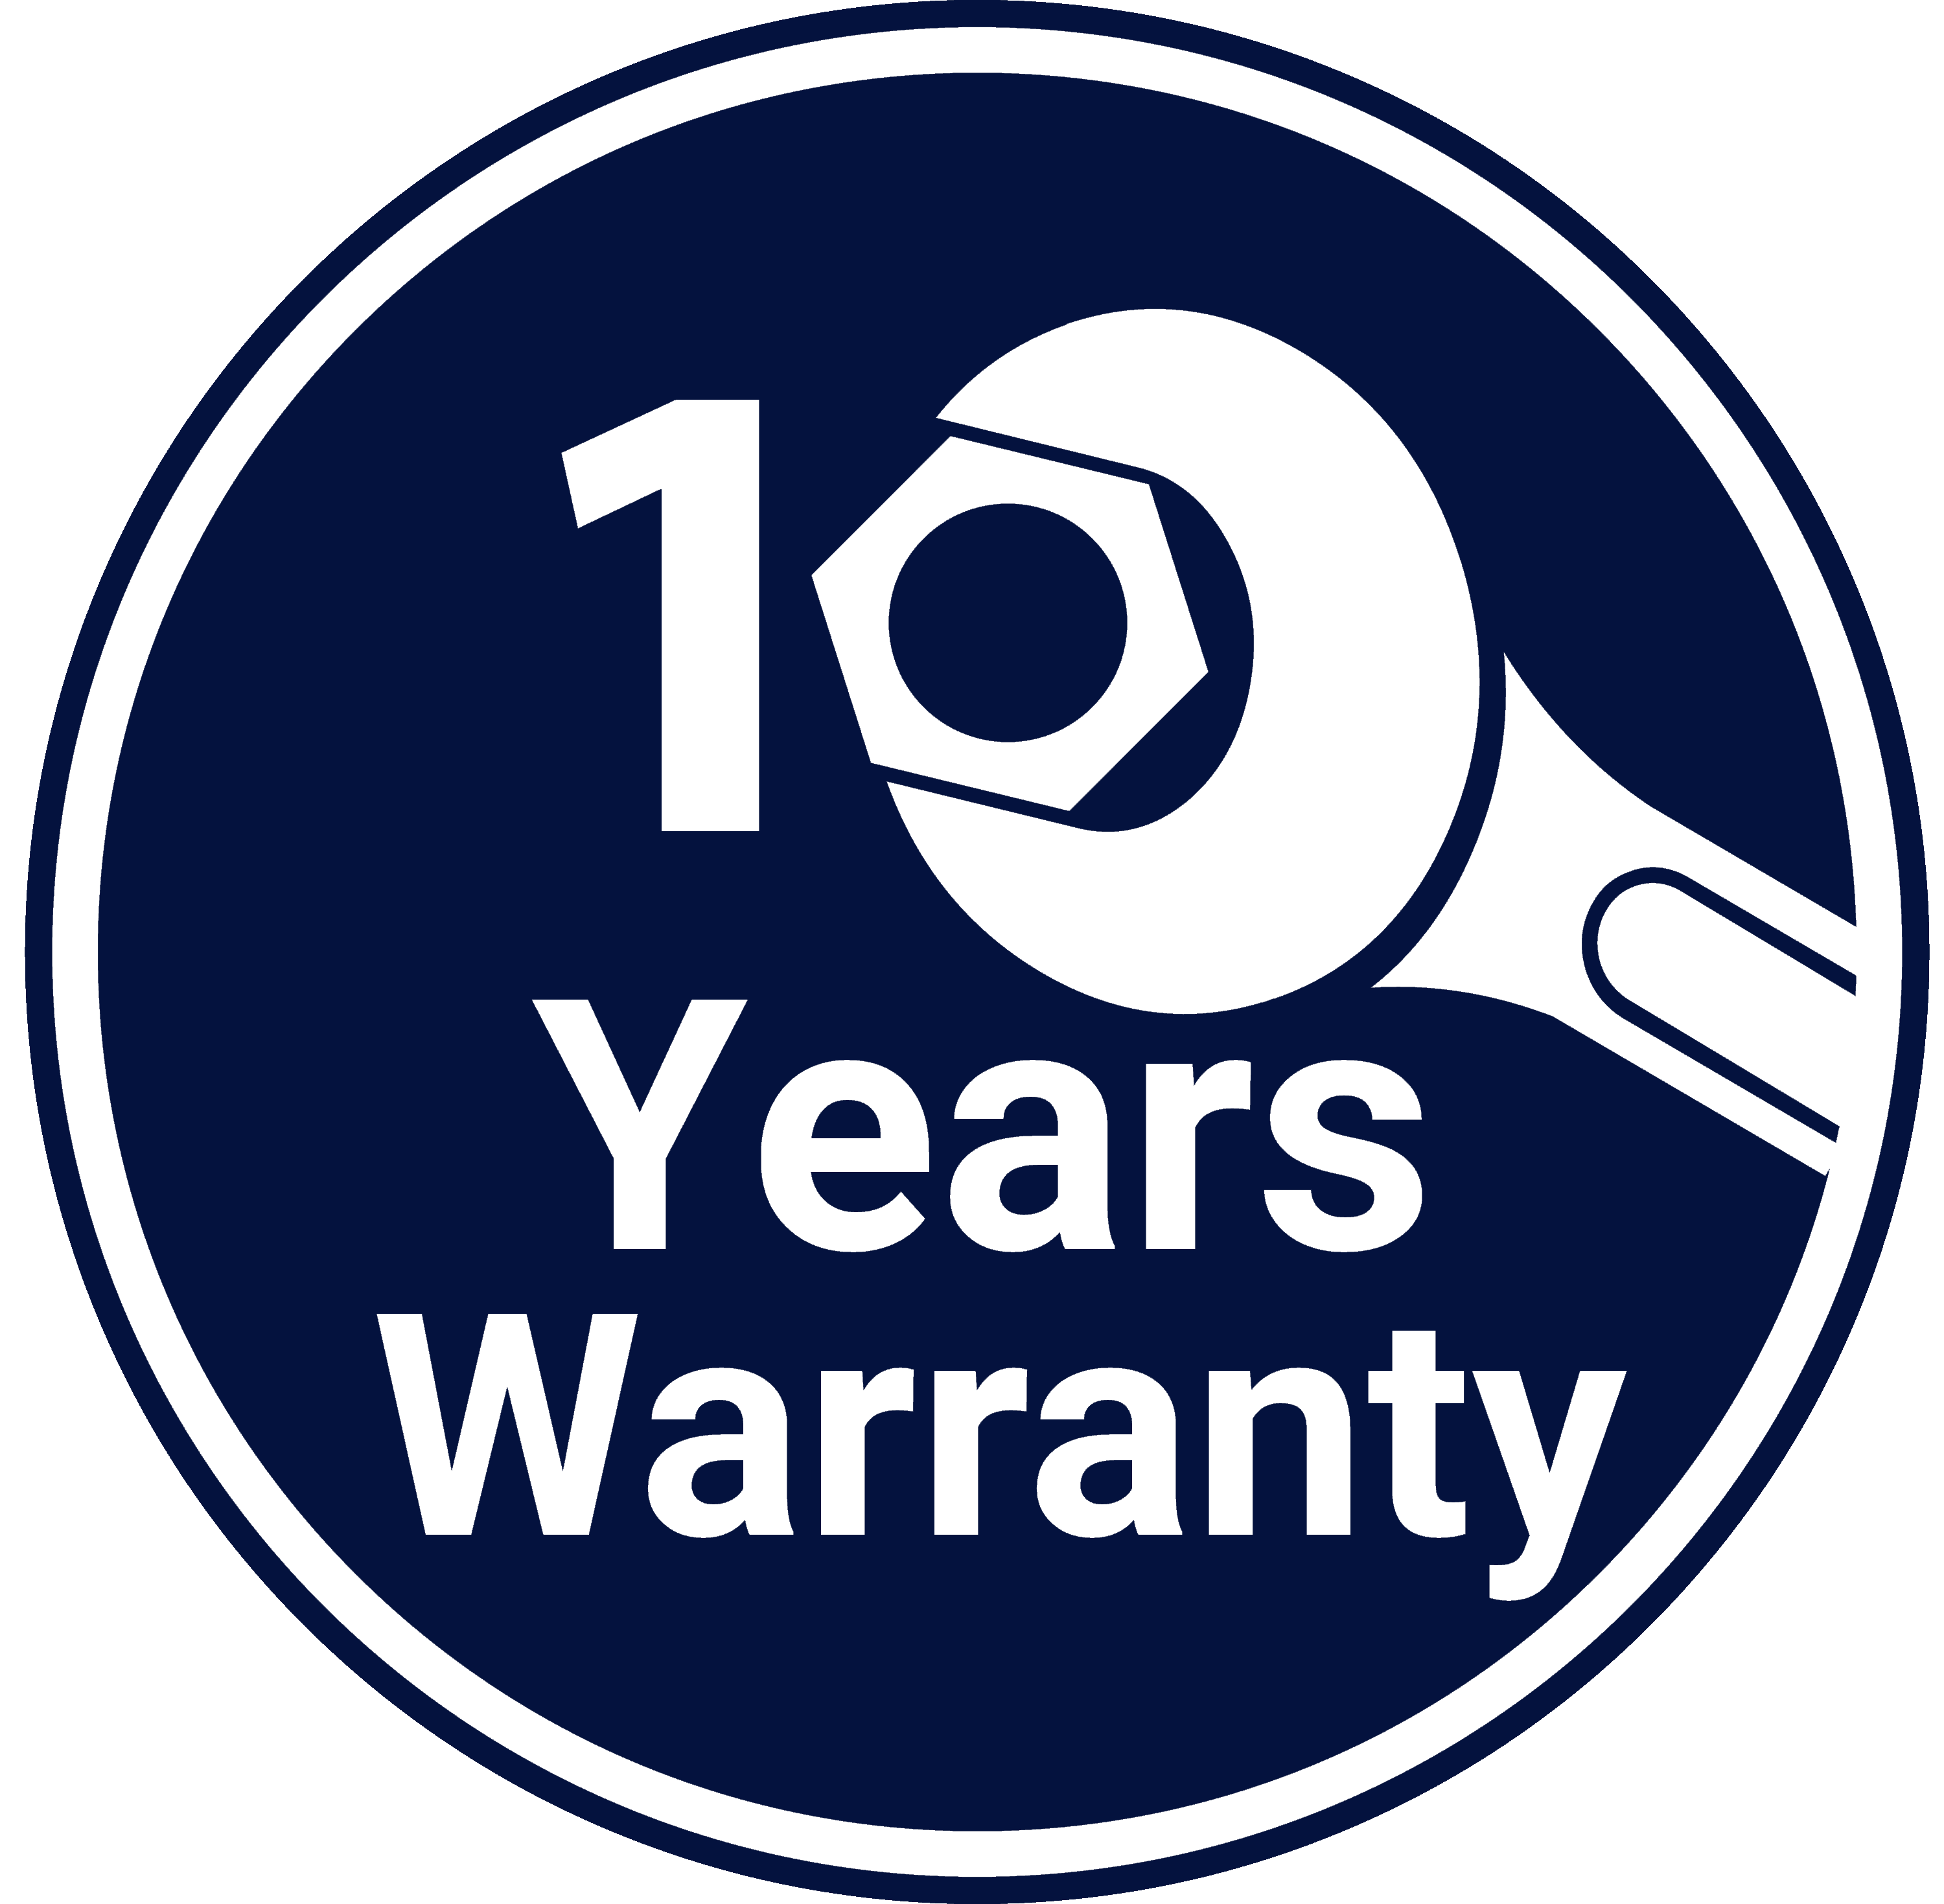 10 years warranty logo